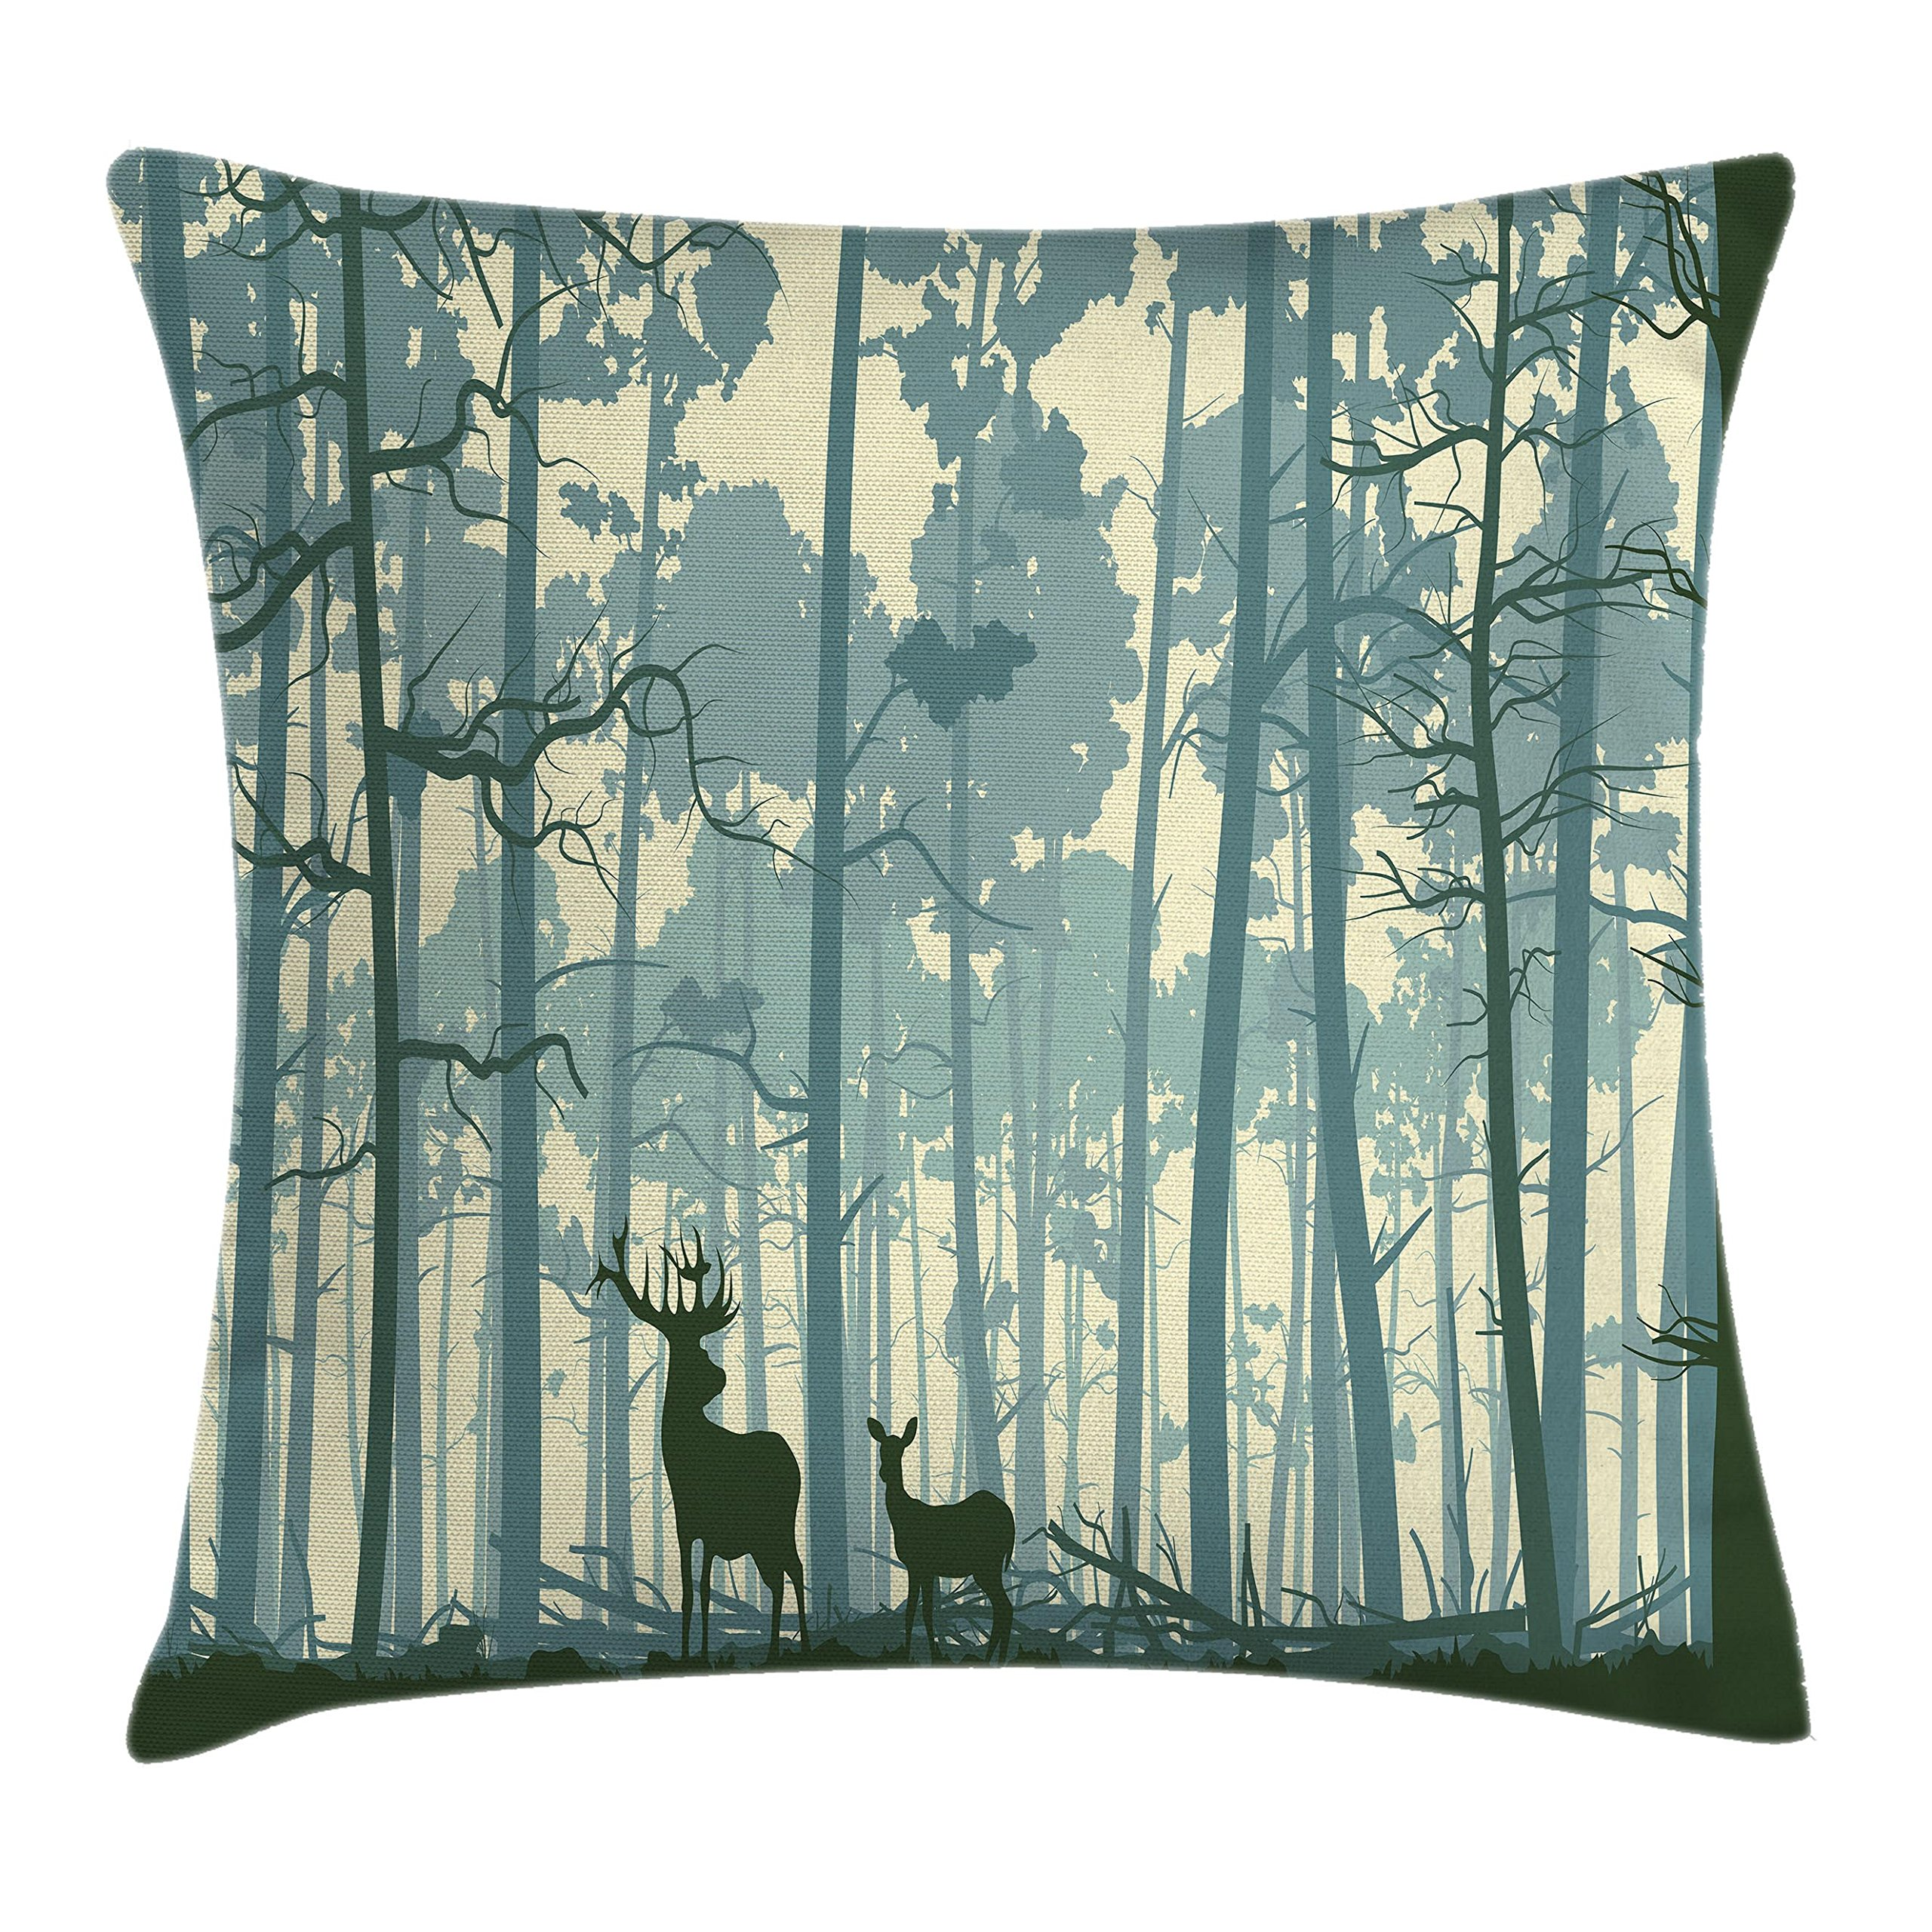 Ambesonne Throw Pillow Cushion Cover, Silhouette of Animal in Foggy Forest Animals in Nature Themed Cartoon Dusk Artwork, Decorative Square Accent Pillow Case, 20 X 20 Inches, Black White Grey